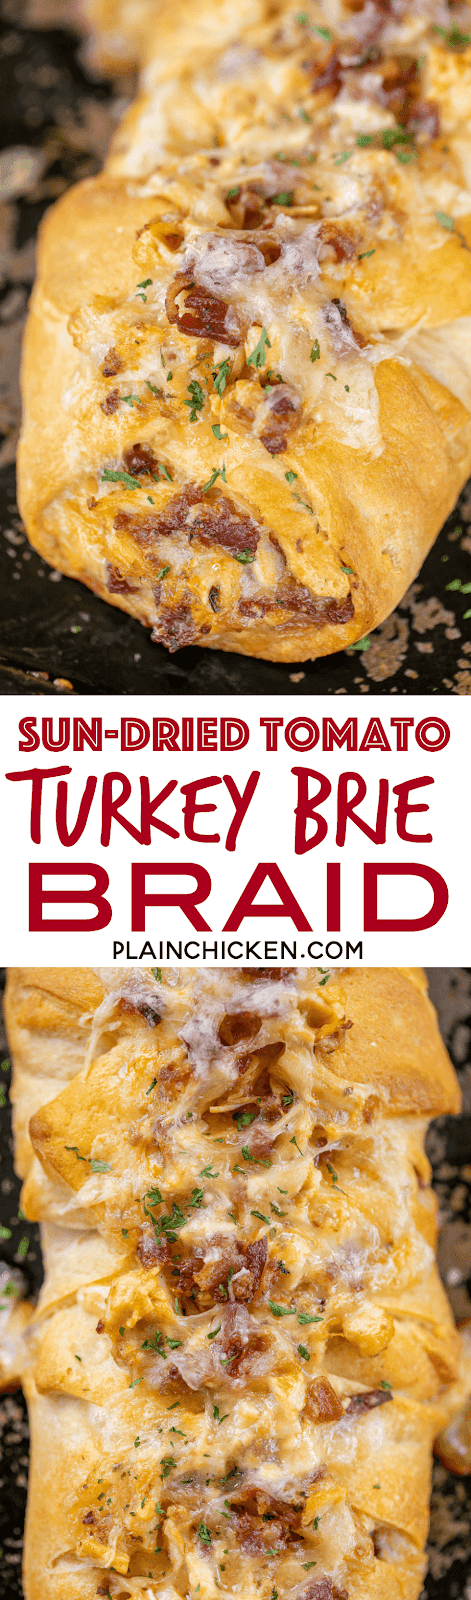 Sun-Dried Tomato Turkey Brie Braid - seriously delicious!!! Great way to use up any holiday turkey! Turkey, mayo, sun-dried tomato pesto, bacon and brie wrapped in crescent rolls and baked.We love this easy sandwich. Perfect for a quick lunch, dinner or appetizer. #leftoverturkey #turkey #sandwich